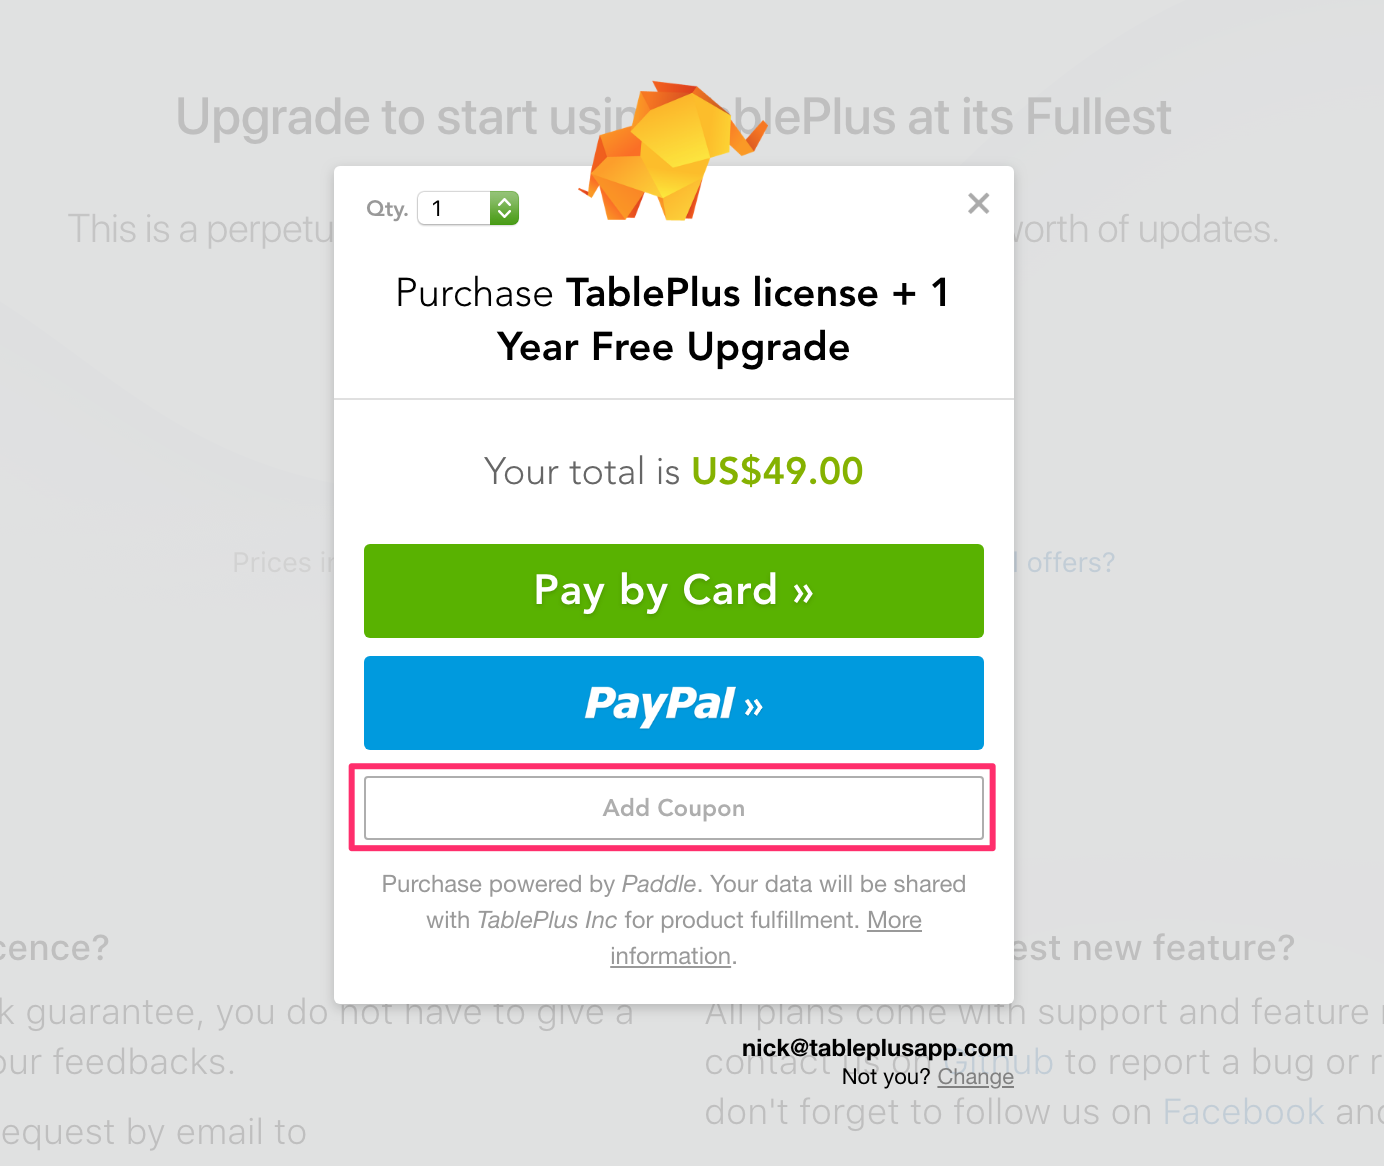 How to use the coupon code? | TablePlus